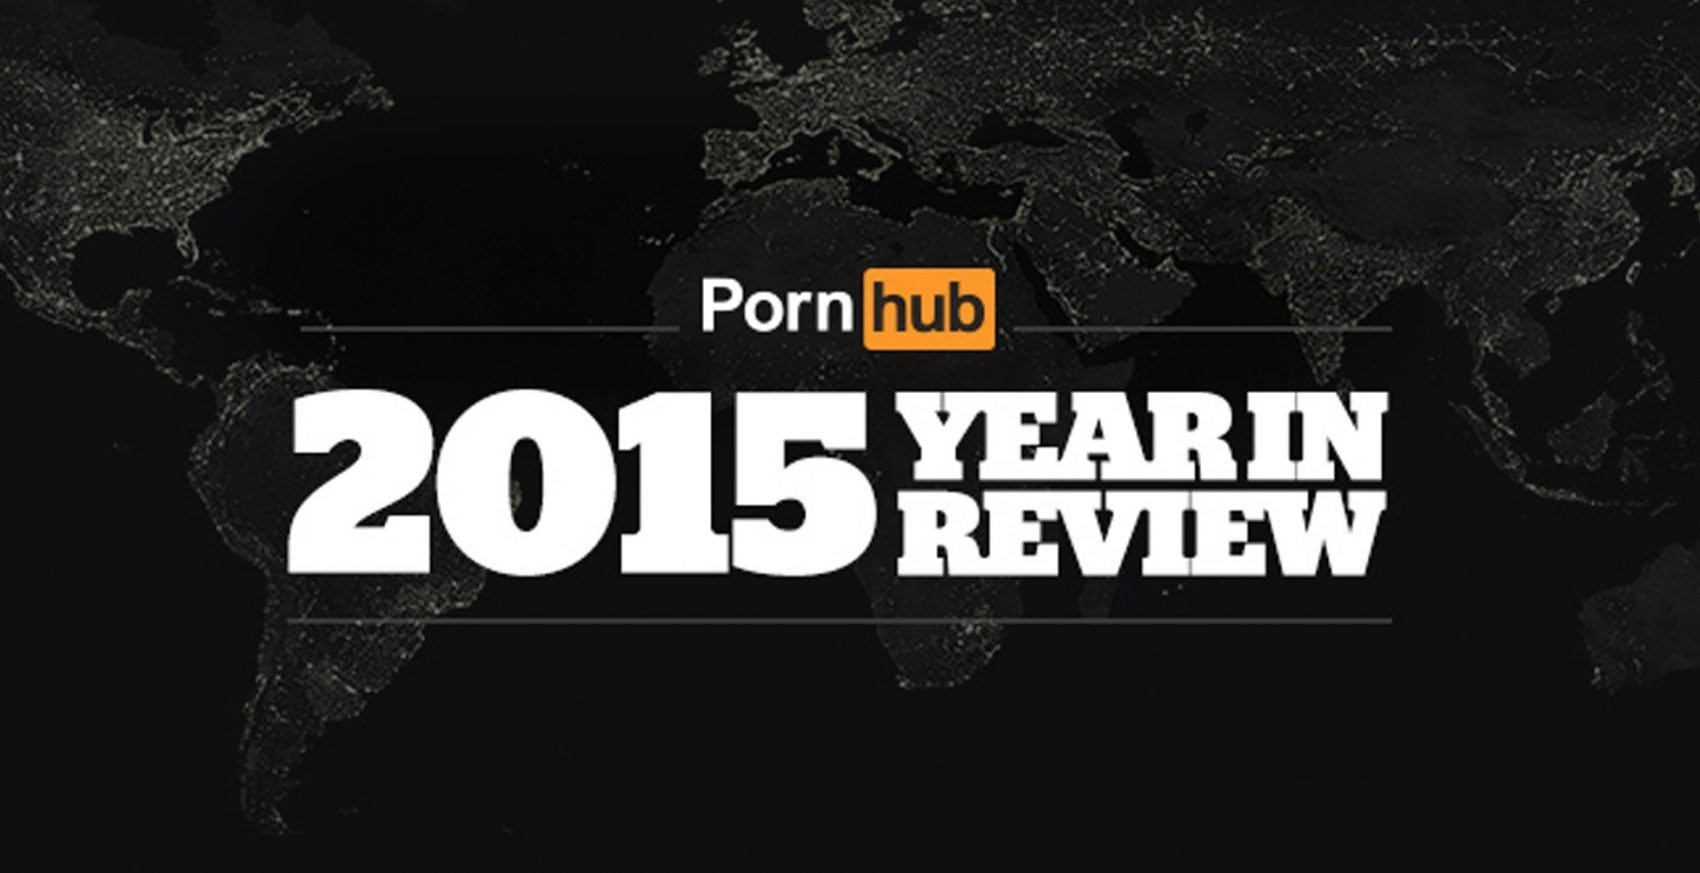 2015's Most Popular Genre Of Porn Is Extremely Disturbing, To Say The Least